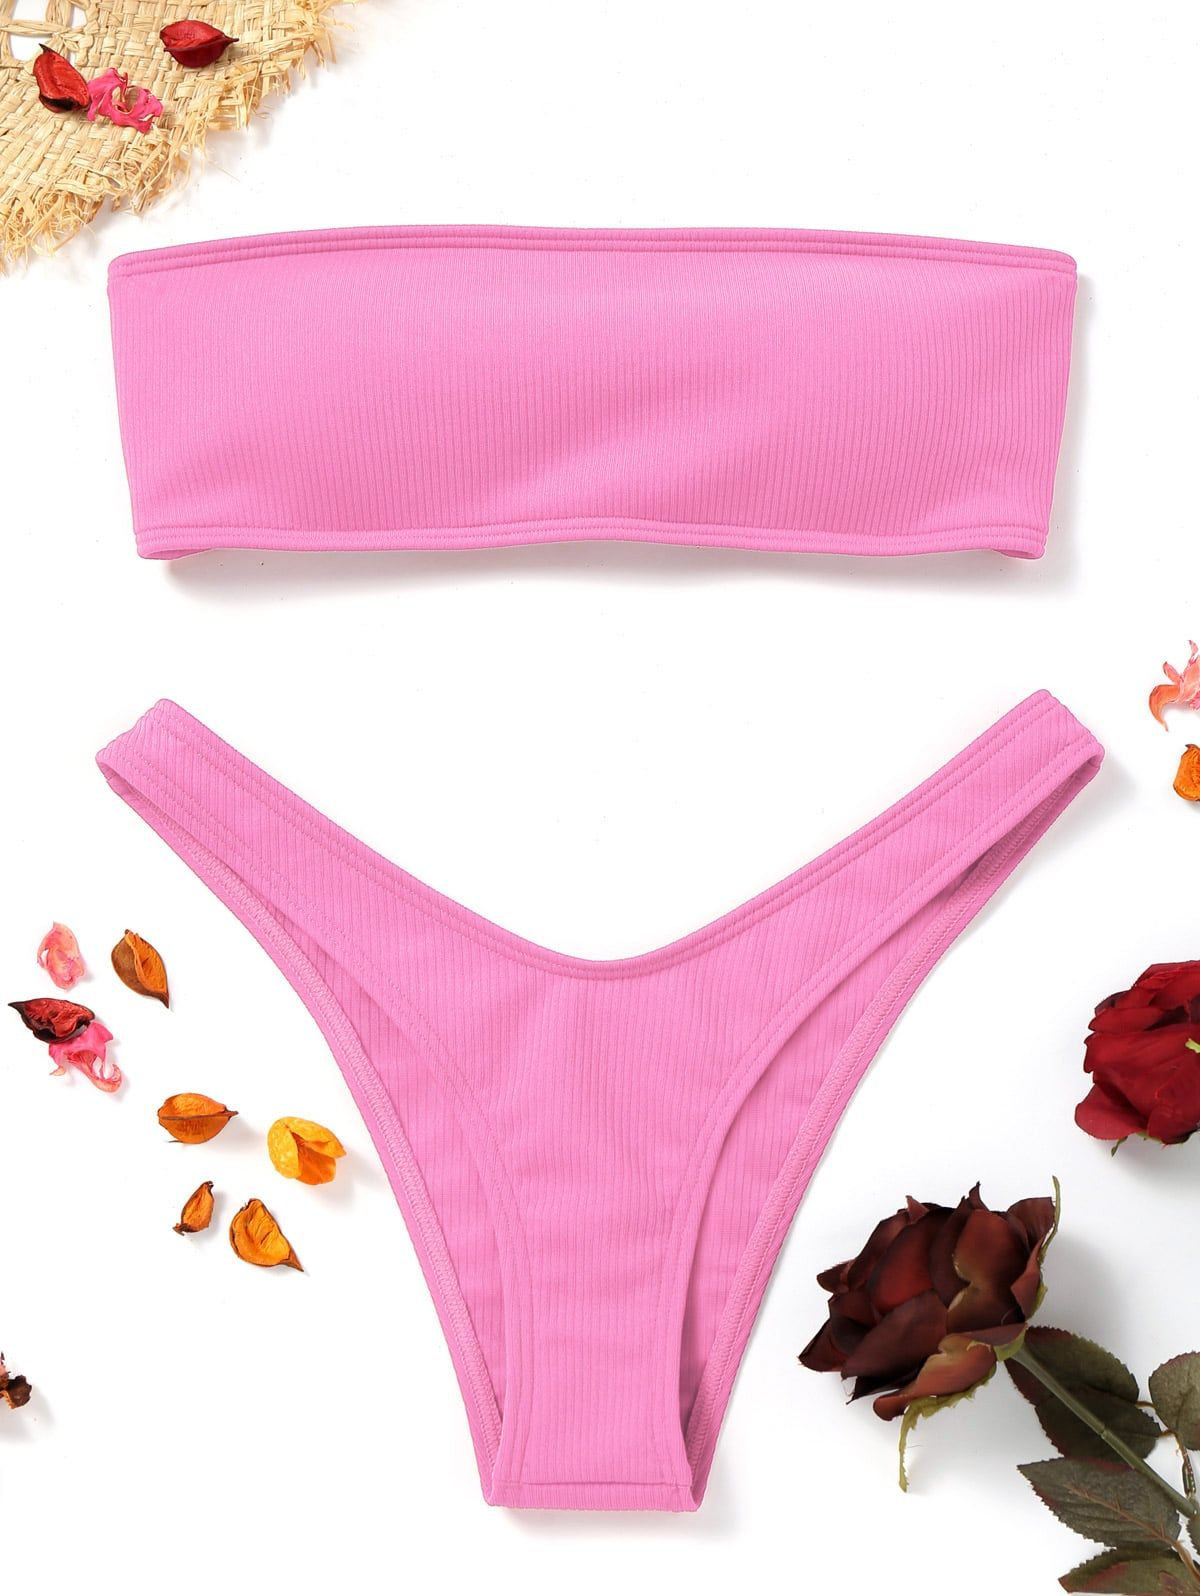 f61120450da14 ... suits for women on ZAFUL. They are beautiful, lovable and affordable.  You deserve it! #affiliatelink #pink #bikini #summertime